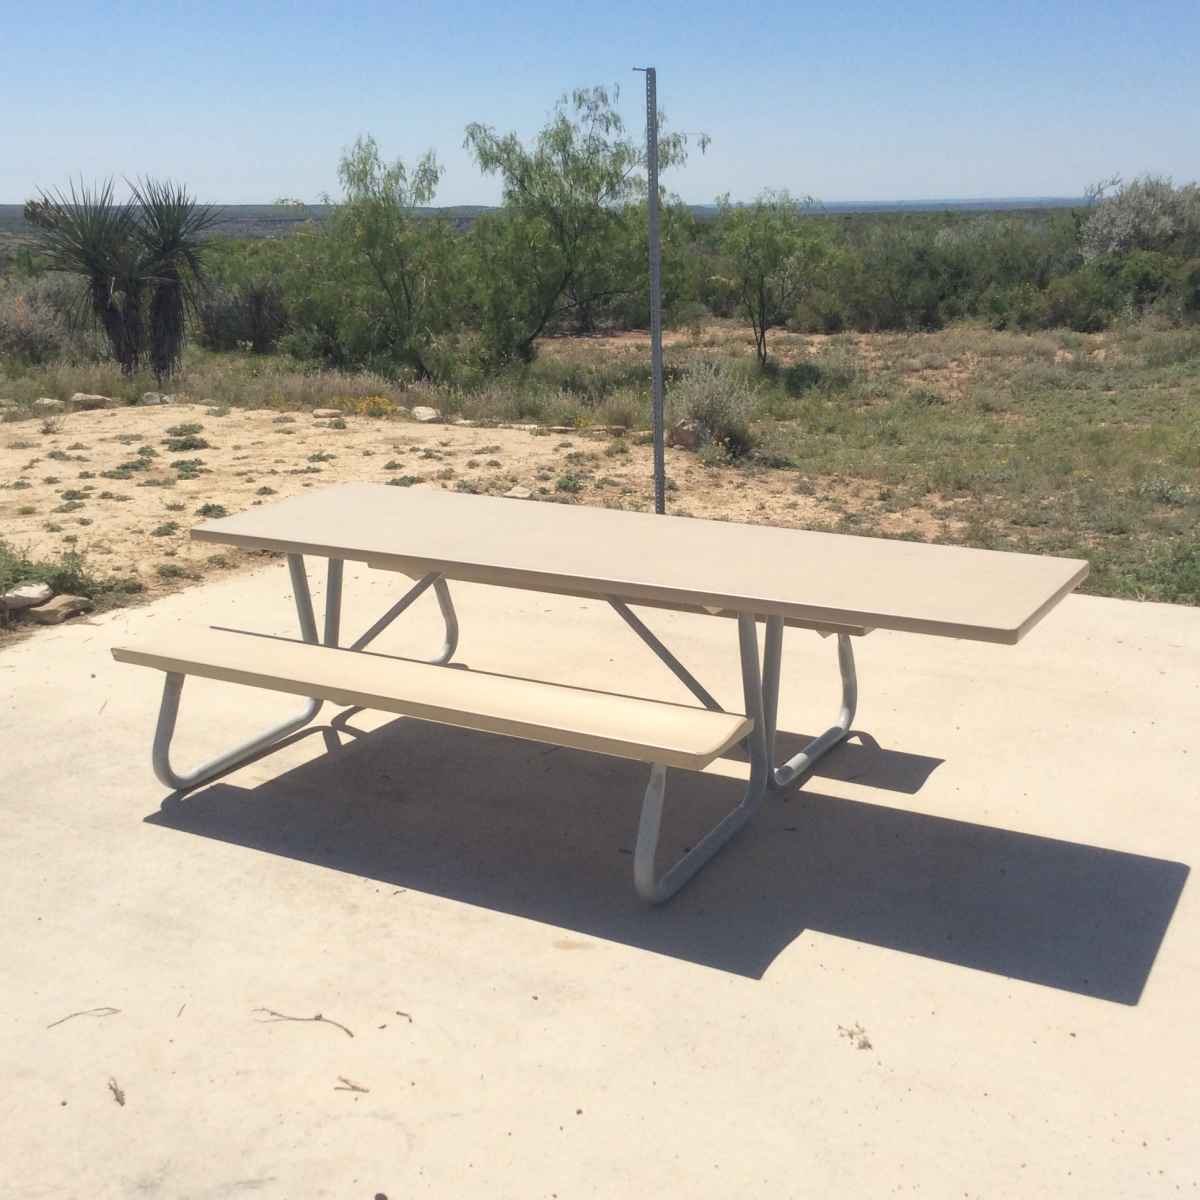 The picnic table at Campsite 44 is designed to be usable by people in wheelchairs.